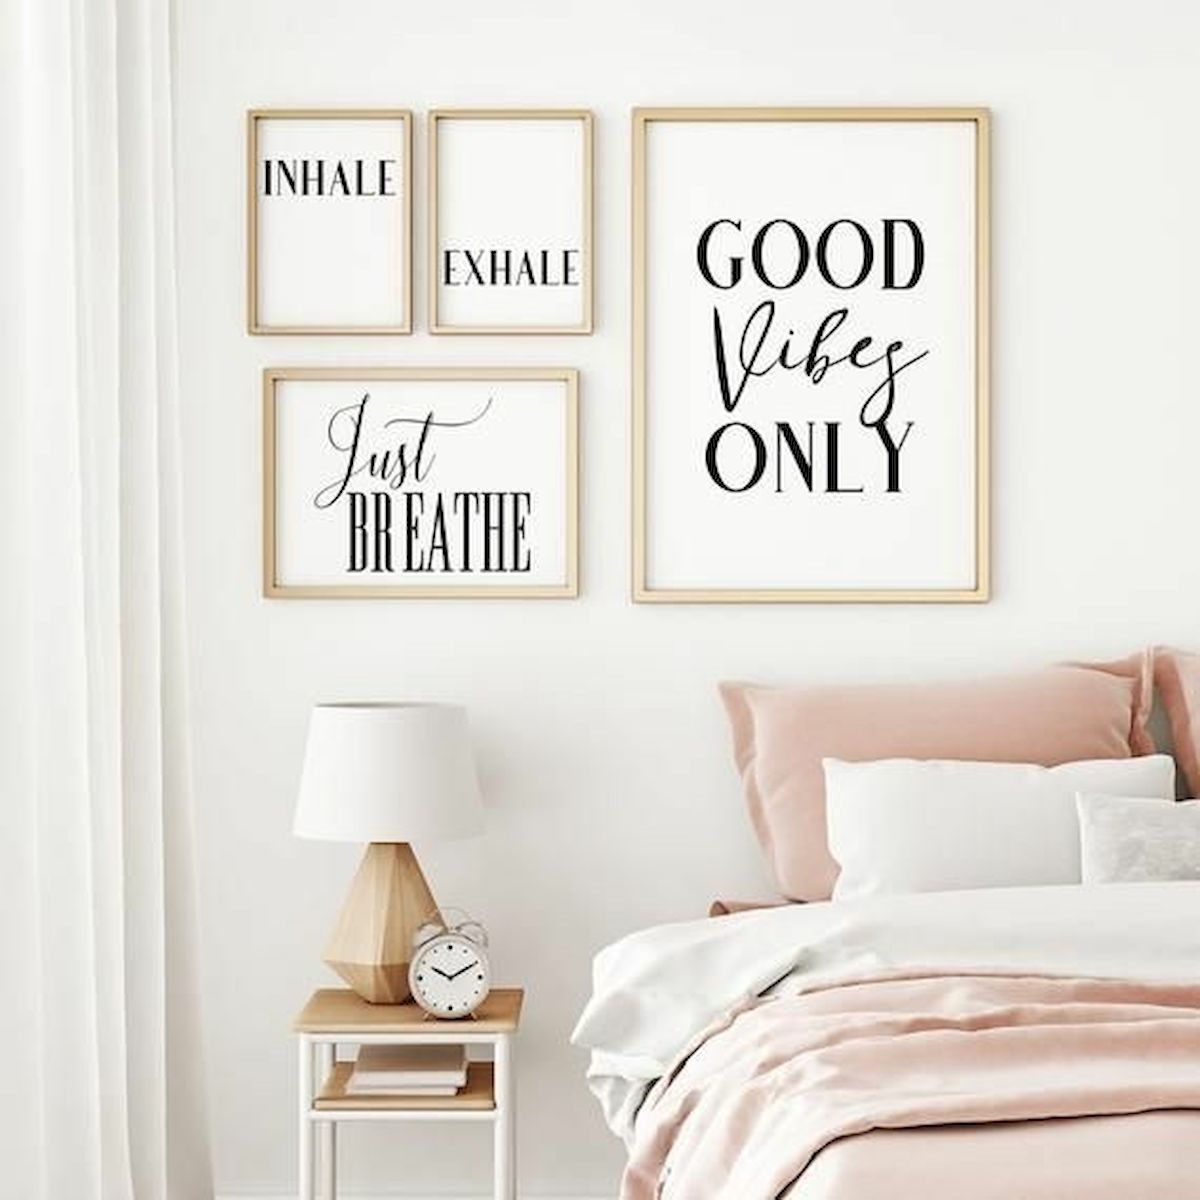 70 Simple Wall Bedroom Decor and Design Ideas (67)